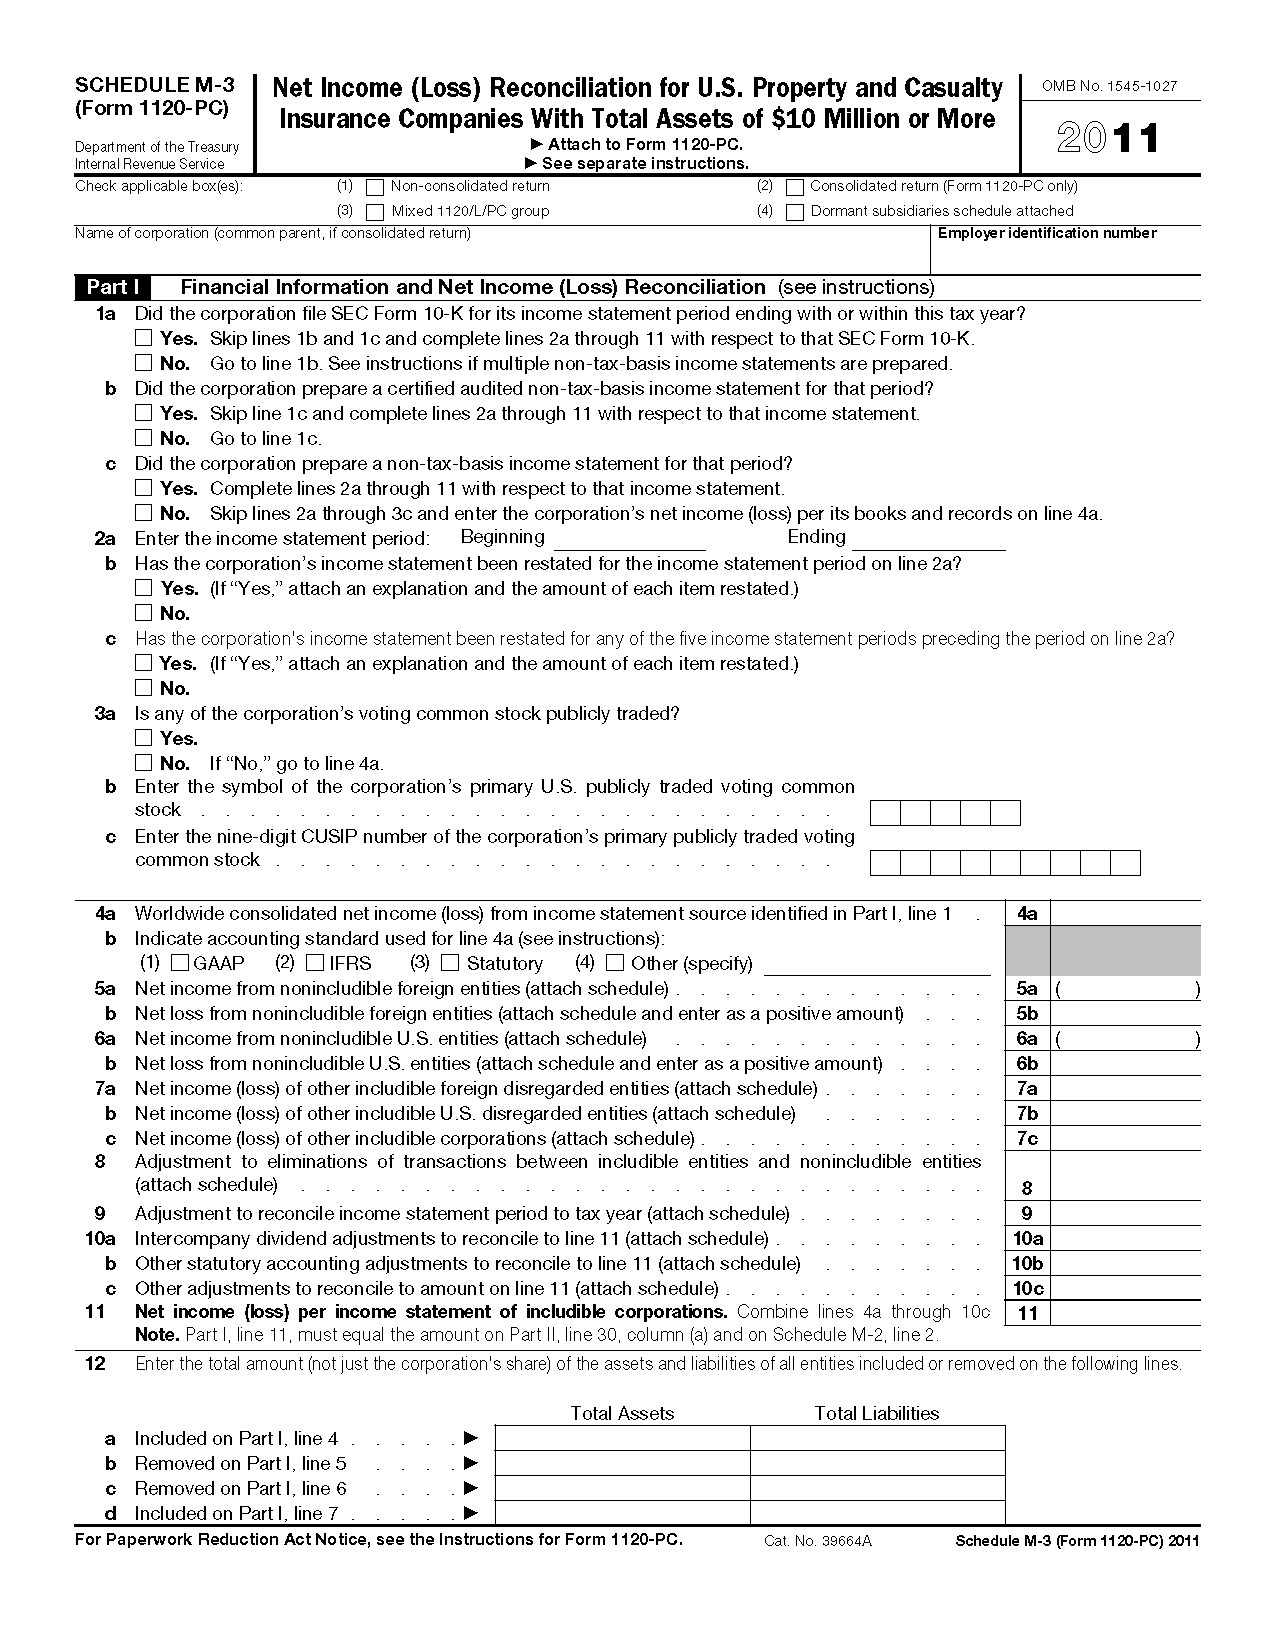 Irs Form 4564 Gallery - Form Example Ideas